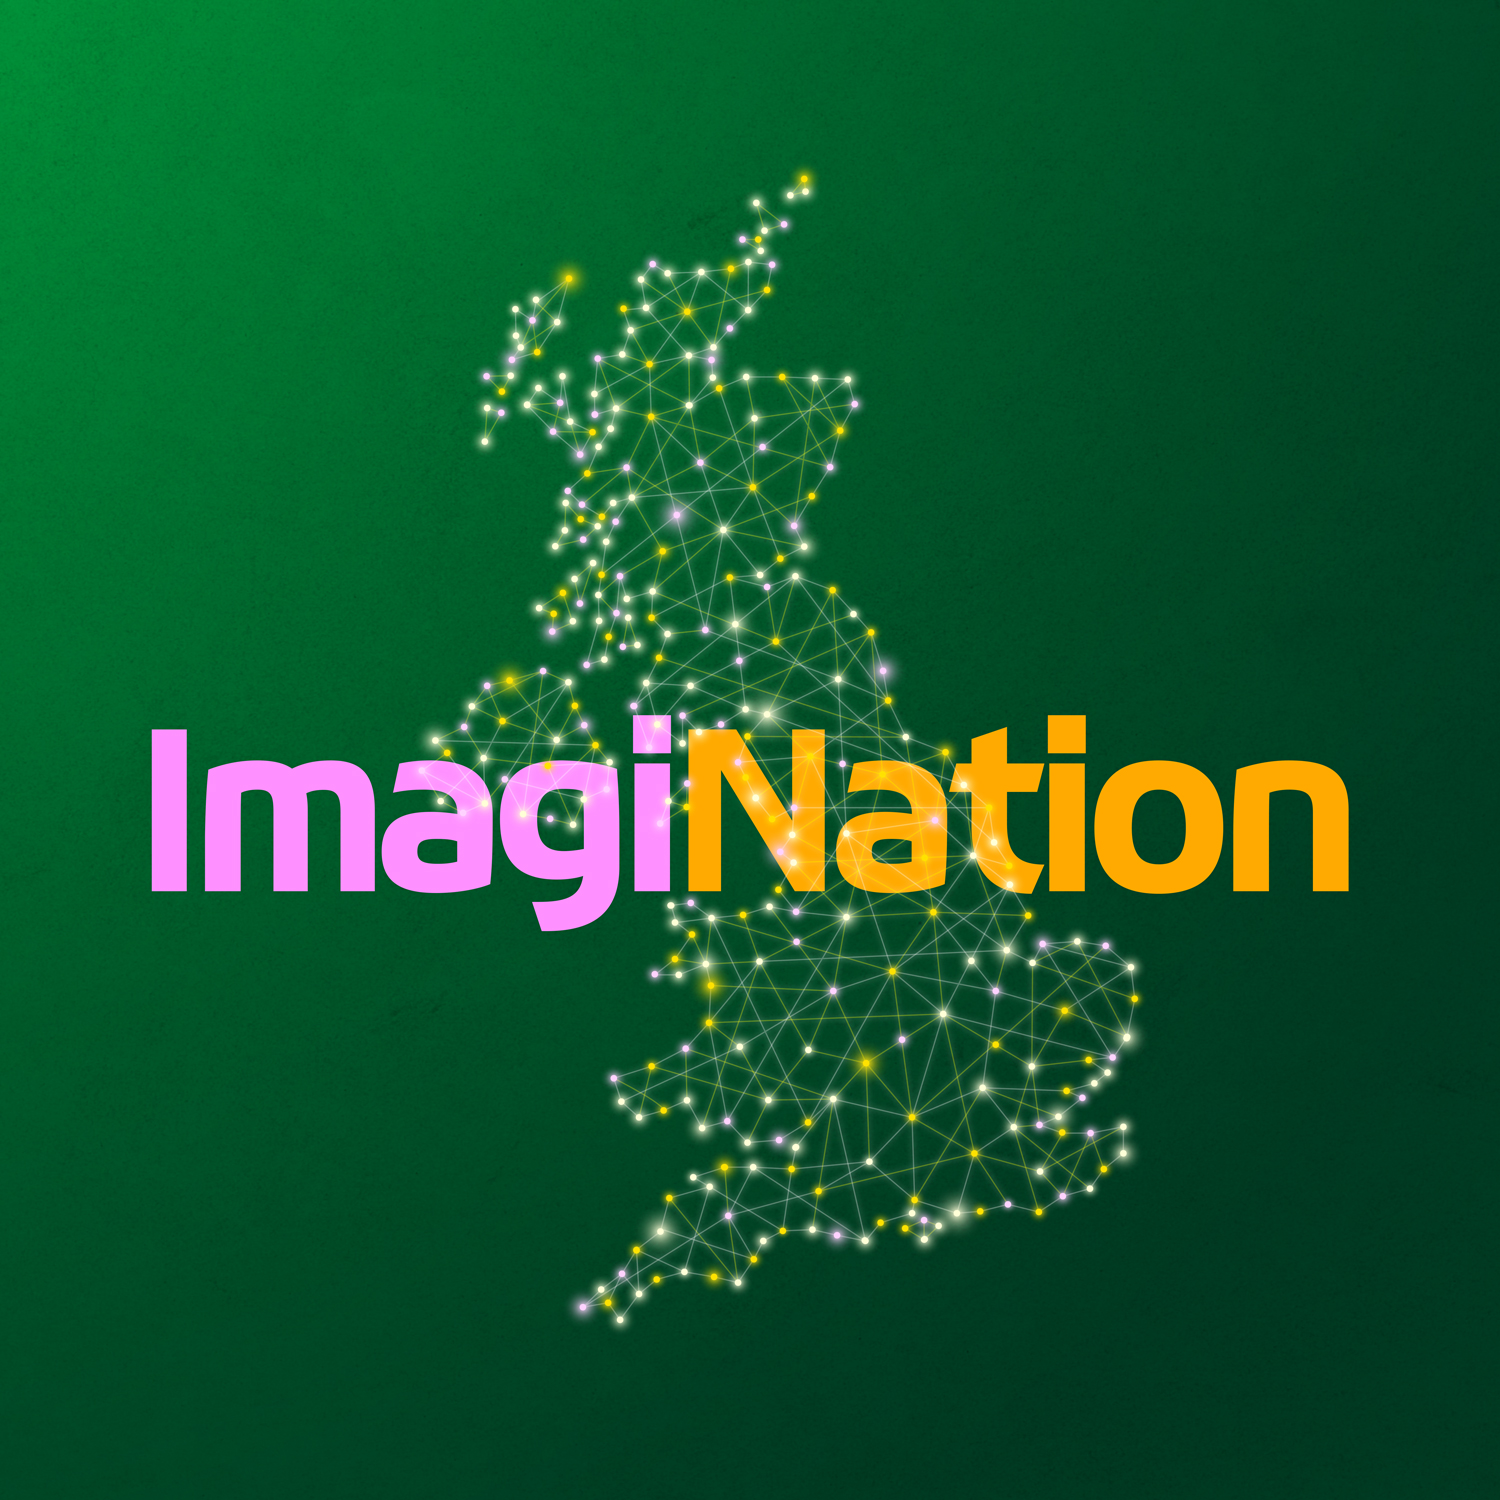 Submit your ImagiNation film by 20 July